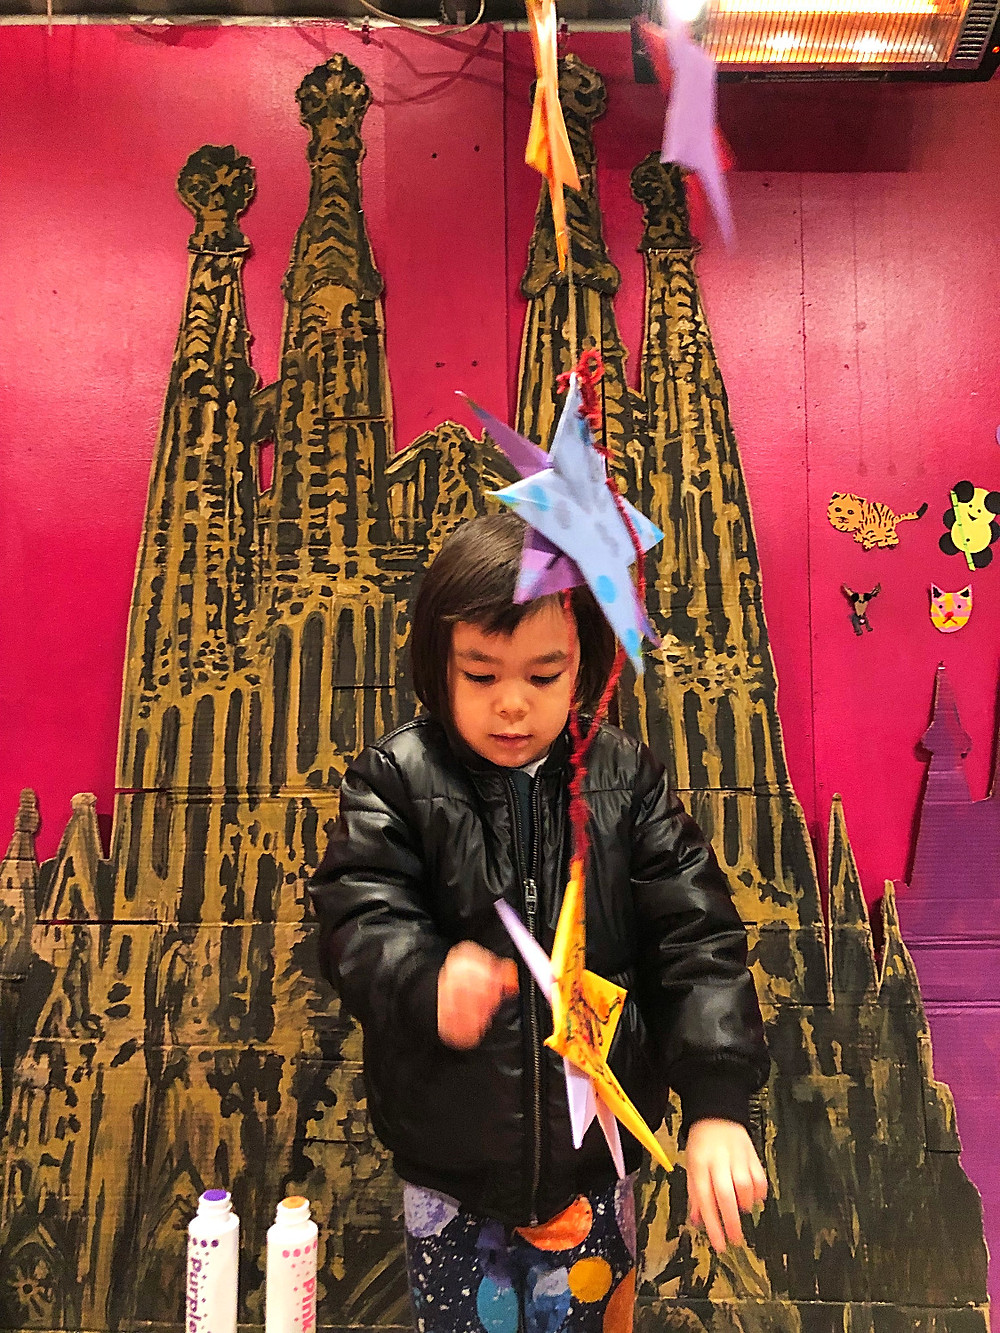 Holiday Bucket List, Fun things to do in NYC for the holidays with your kids, Instagram Bait, Holiday Pop Up, NYC Pop Up, Free in NYC, Curious G and Me, NYC family, NYC with kids, NYC Christmas, NYC icon, Urban Space, Union Square Holiday Market, Christmas AF, Christmas overload, Christmas explosion, Children's Museum of the Arts